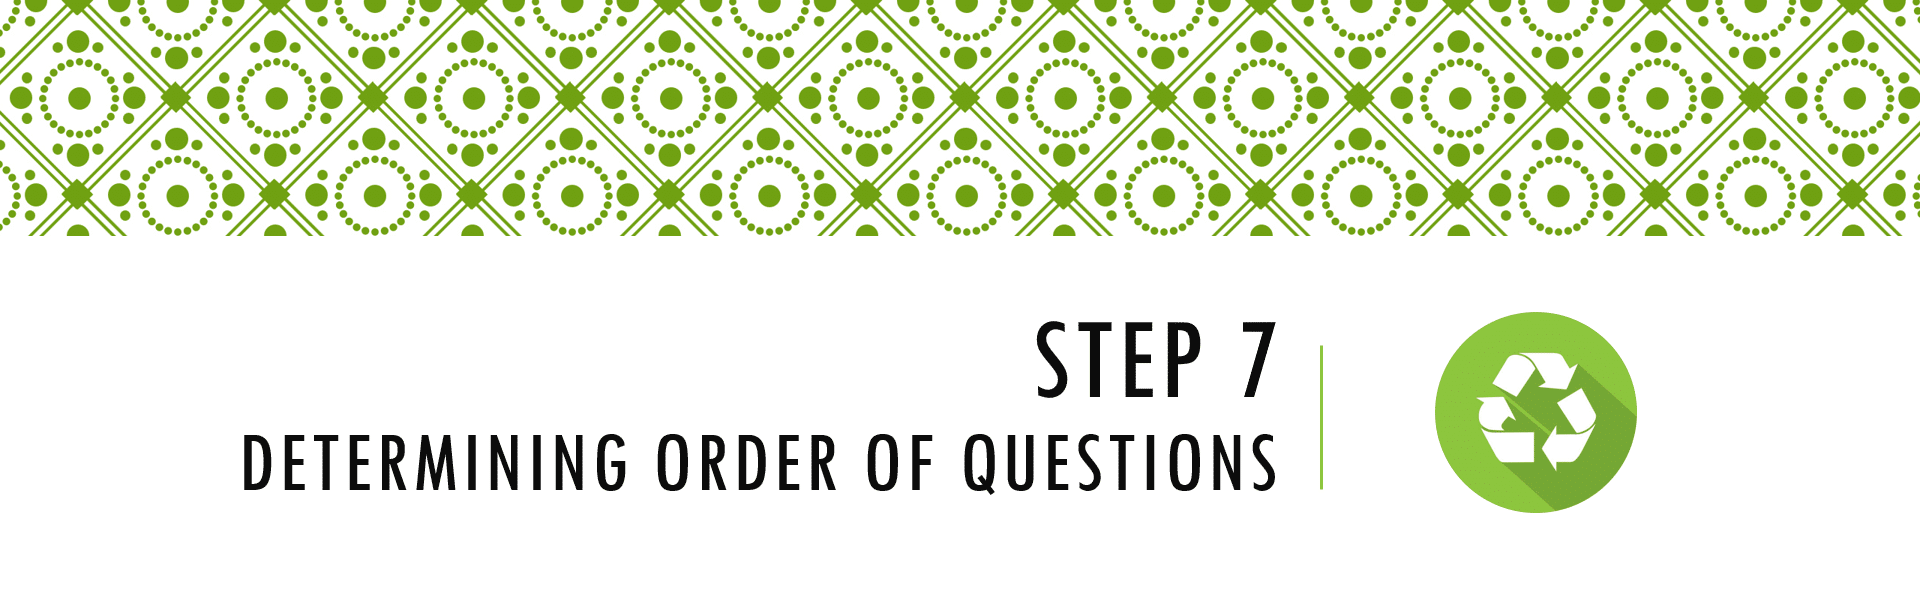 Questionnaire Design Process Step 7 - Determining Order of Questions